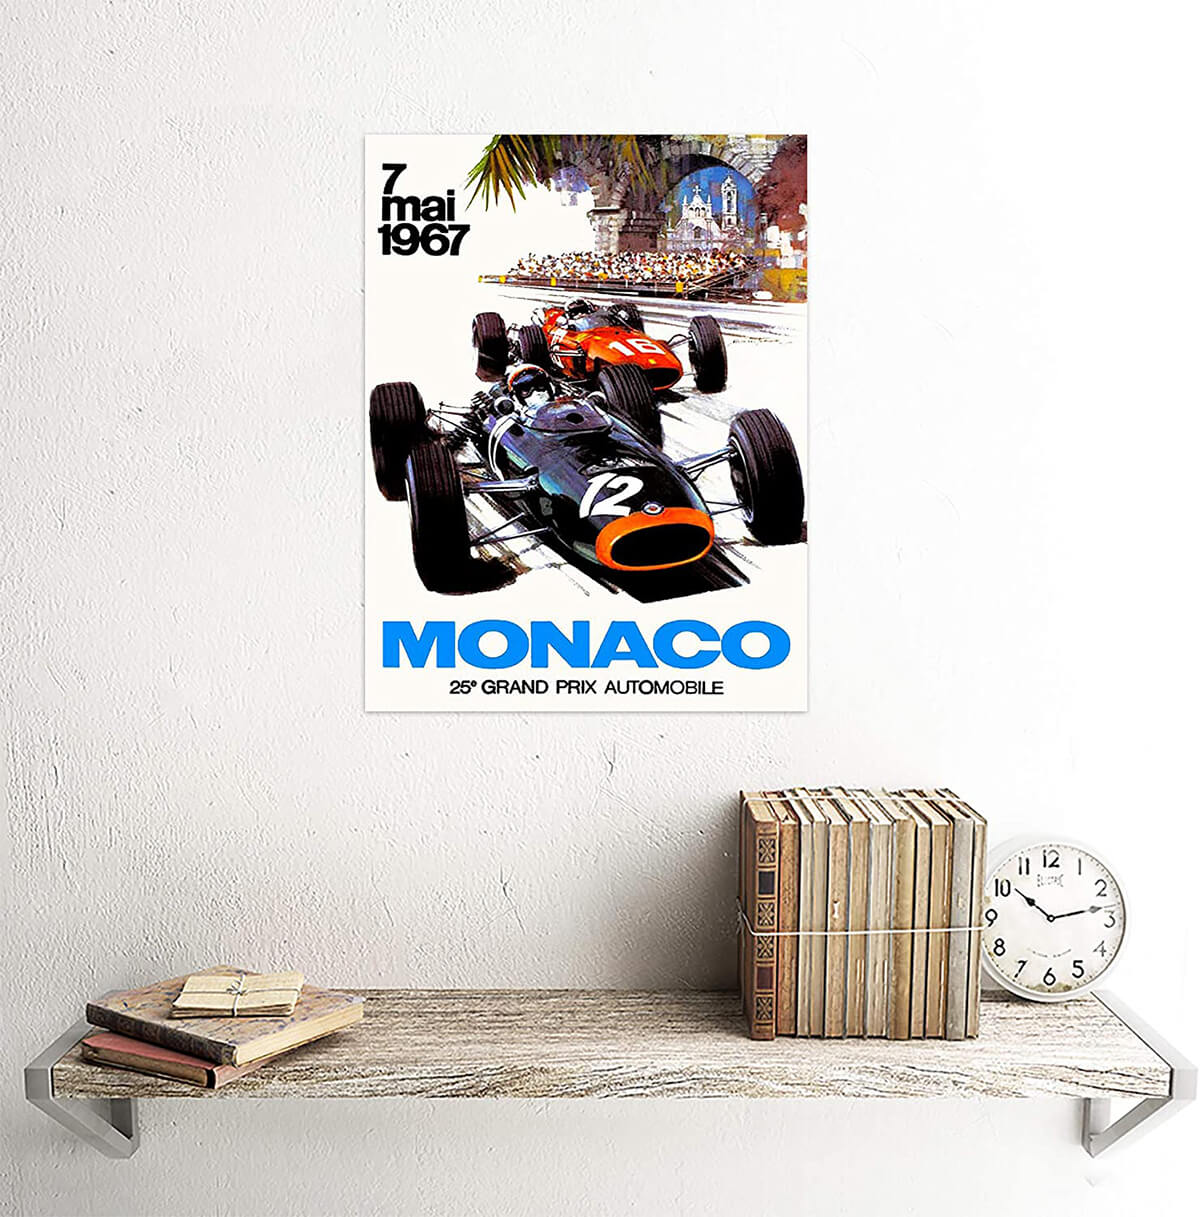 1967 Monaco Grand Prix Vintage Art Illustration